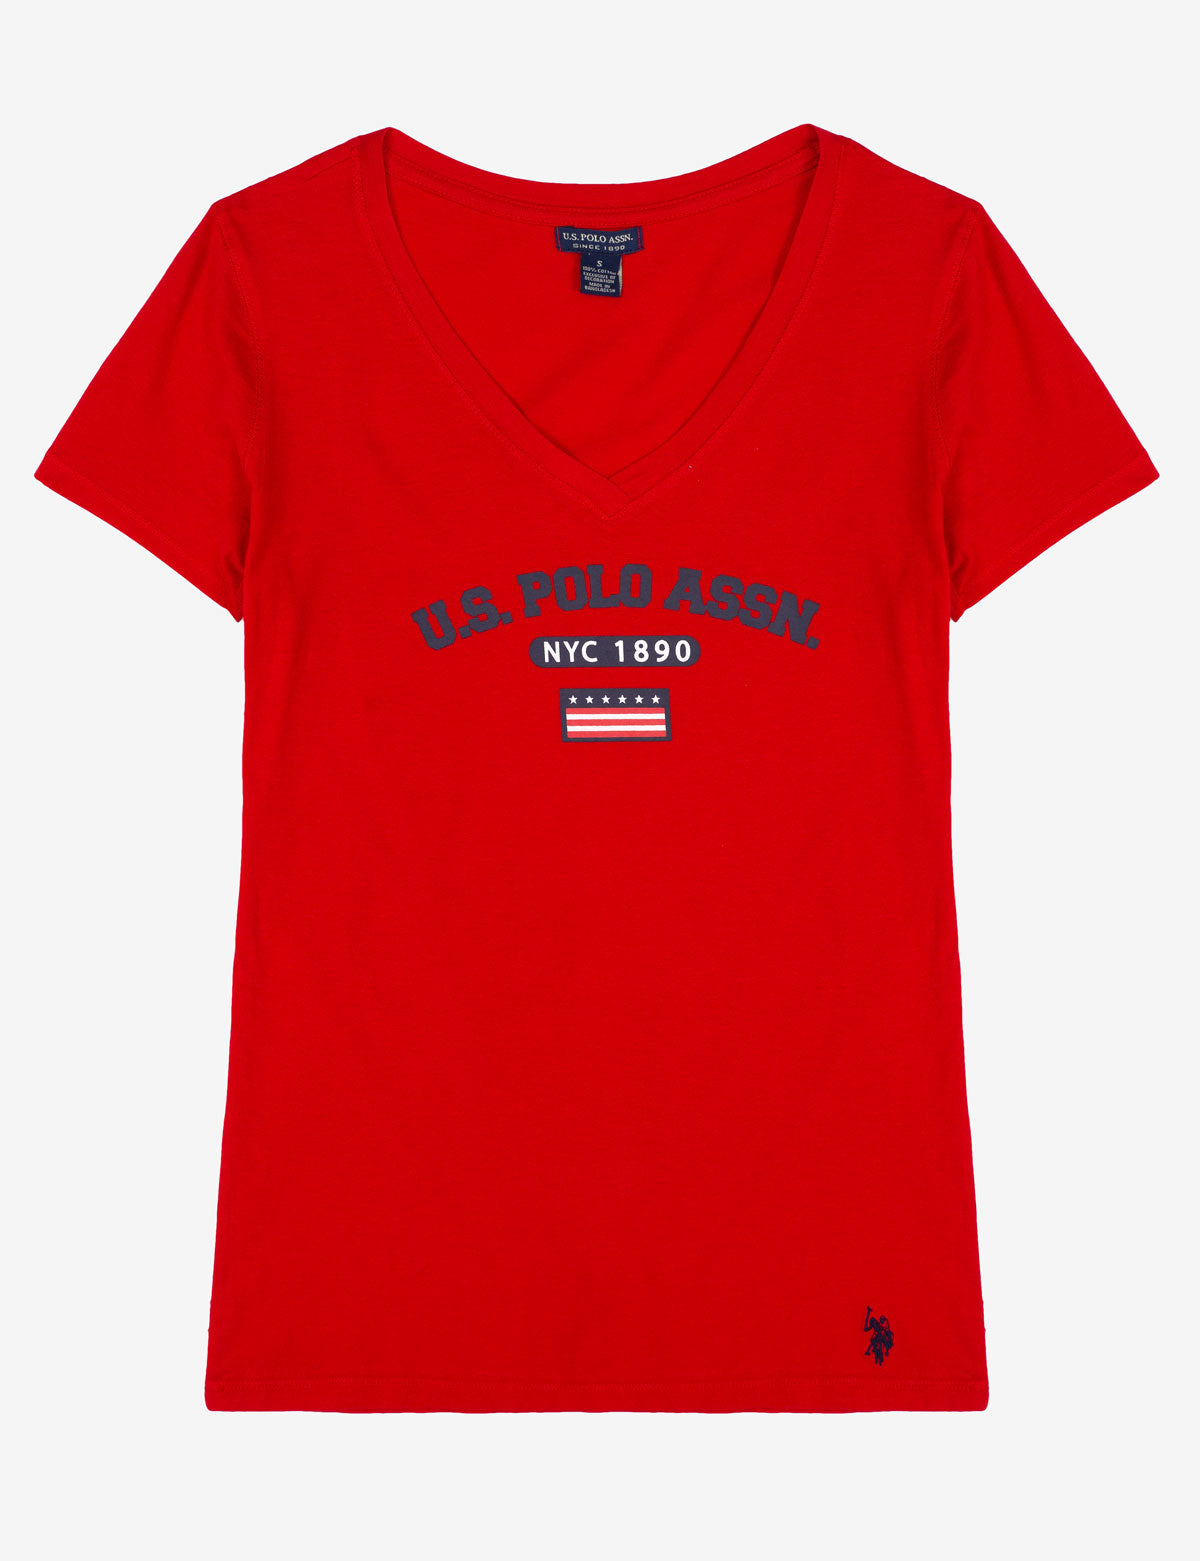 U.S. POLO ASSN. NEW YORK T-SHIRT - U.S. Polo Assn.